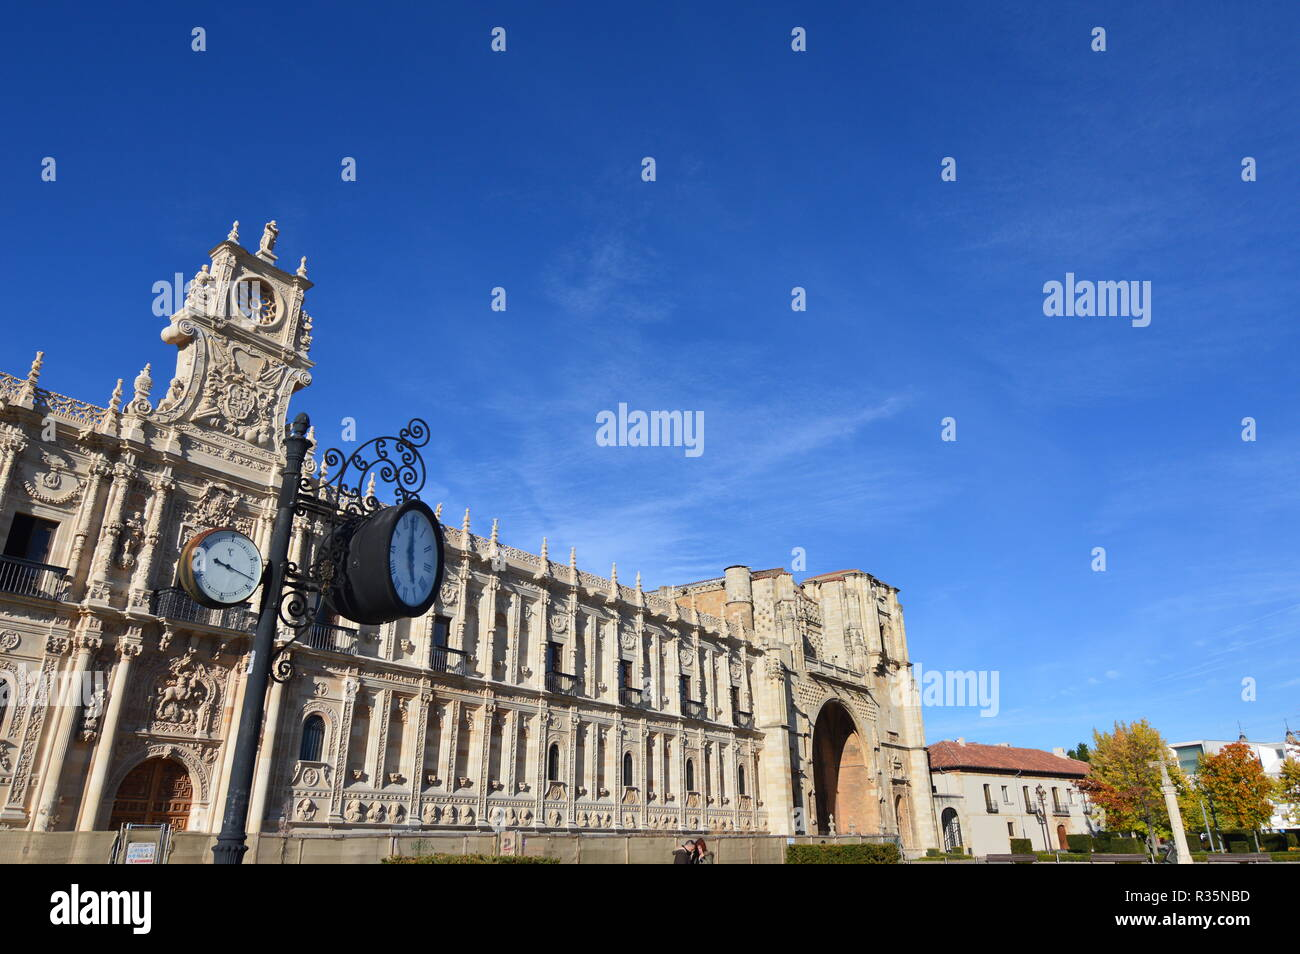 Main facade of the old convent and Hospital San Marcos with a clock and an Analog Thermometer in the foreground in León. Architecture, travel, history - Stock Image